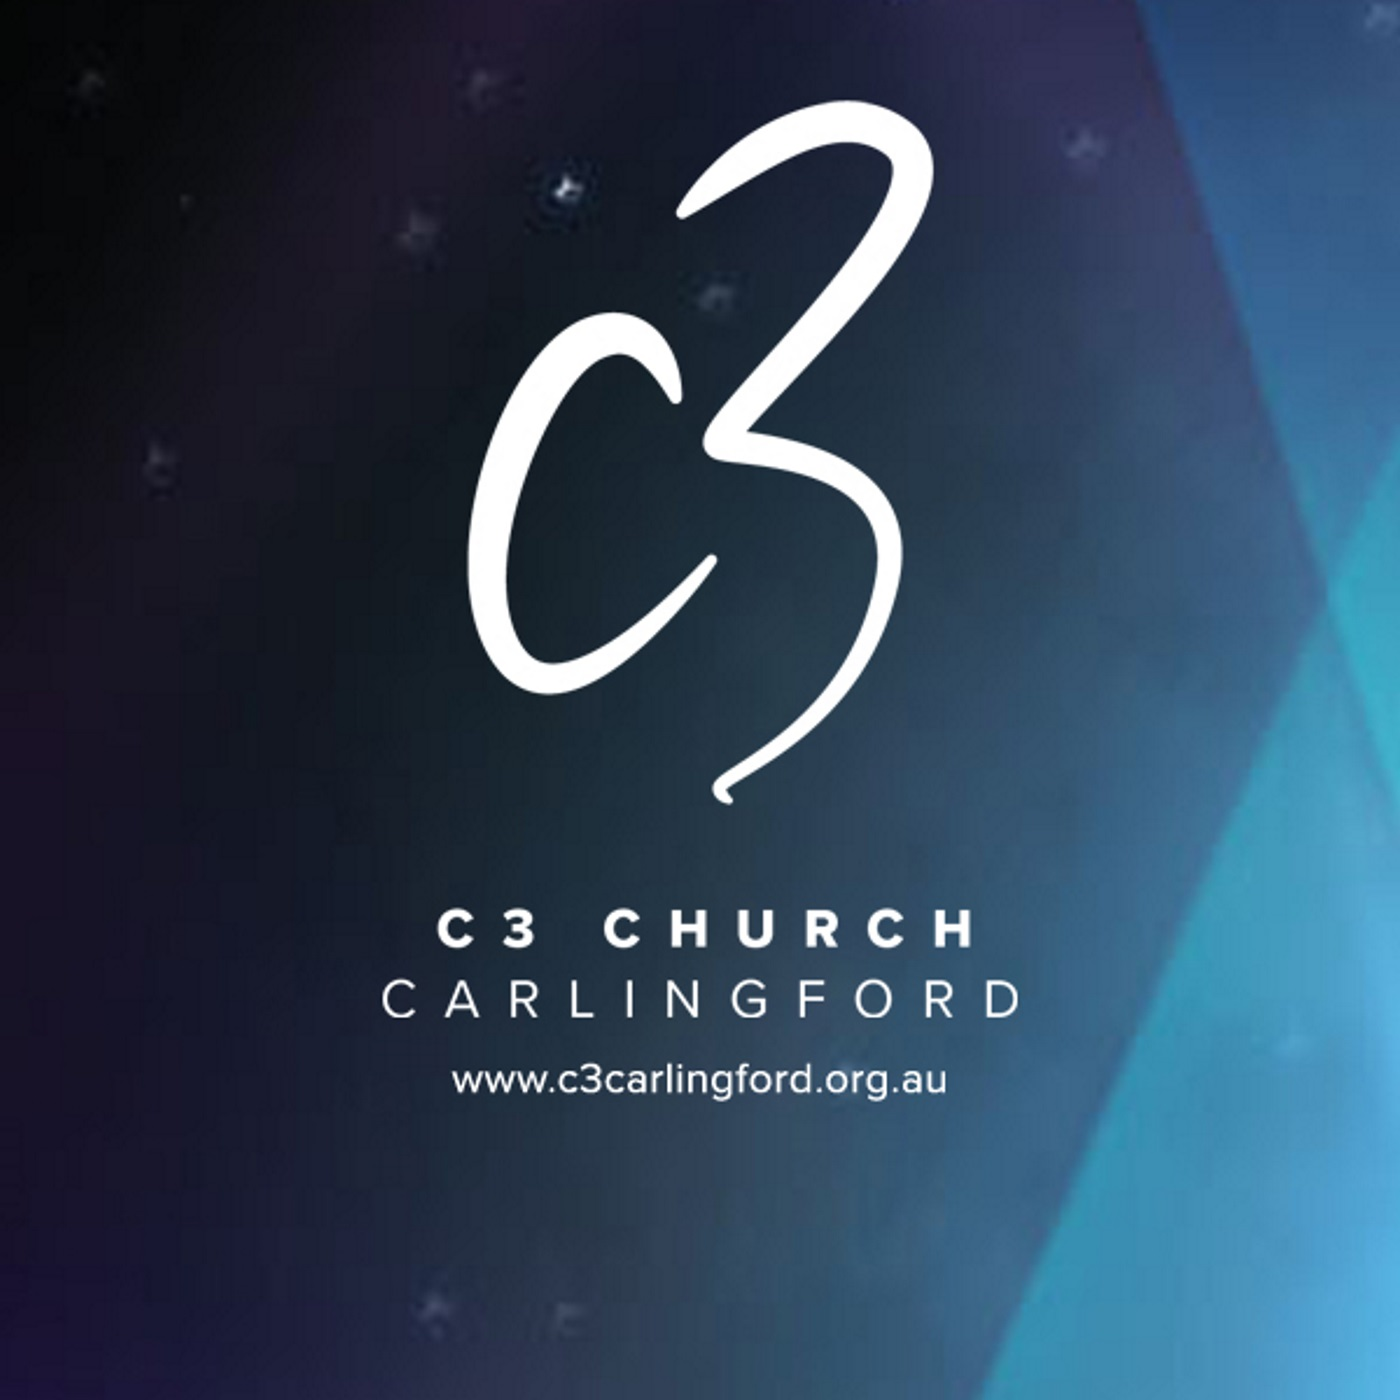 C3 Church Carlingford